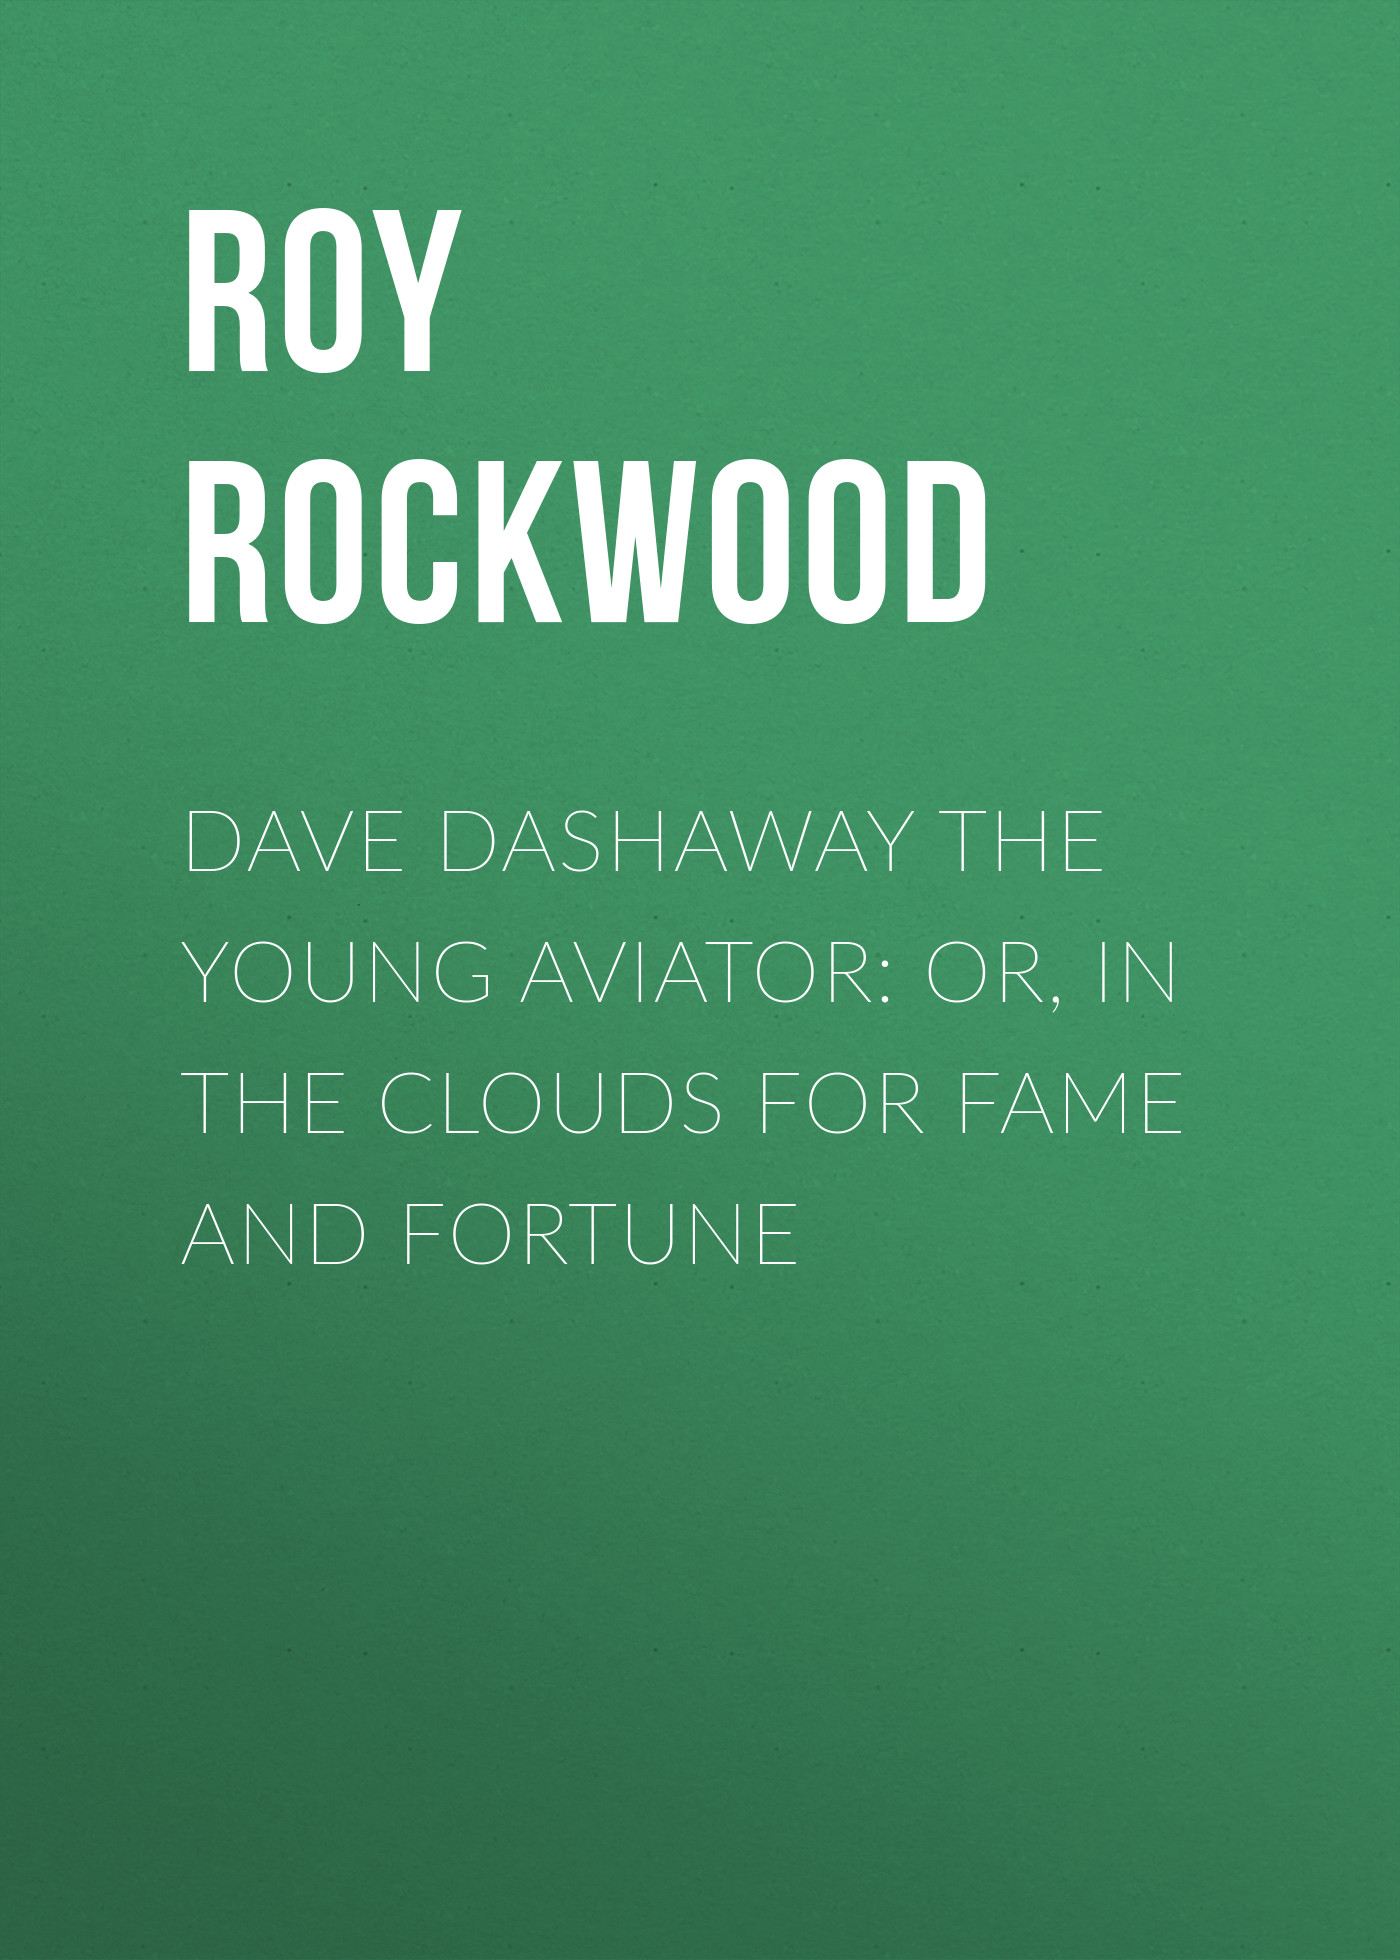 Roy Rockwood Dave Dashaway the Young Aviator: or, In the Clouds for Fame and Fortune the fame thief